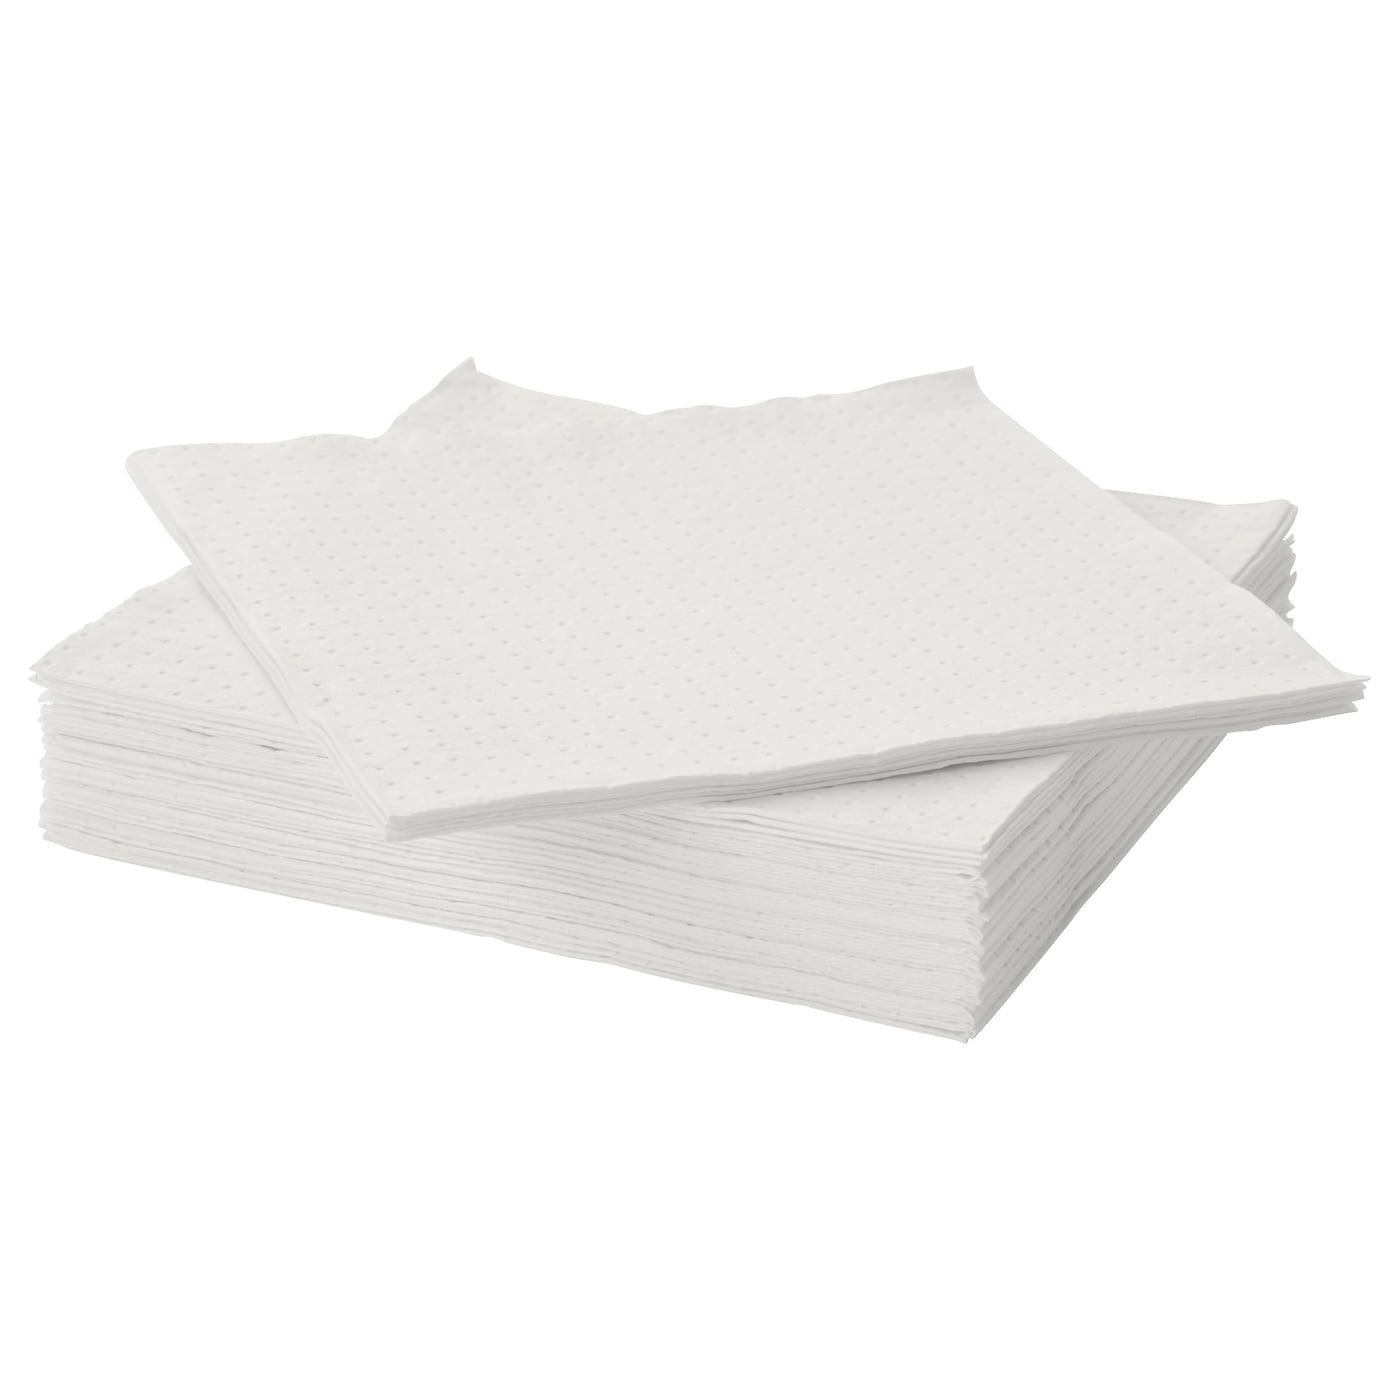 IKEA YPPERLIG paper napkin The napkin is highly absorbent because it's made of three-ply paper.